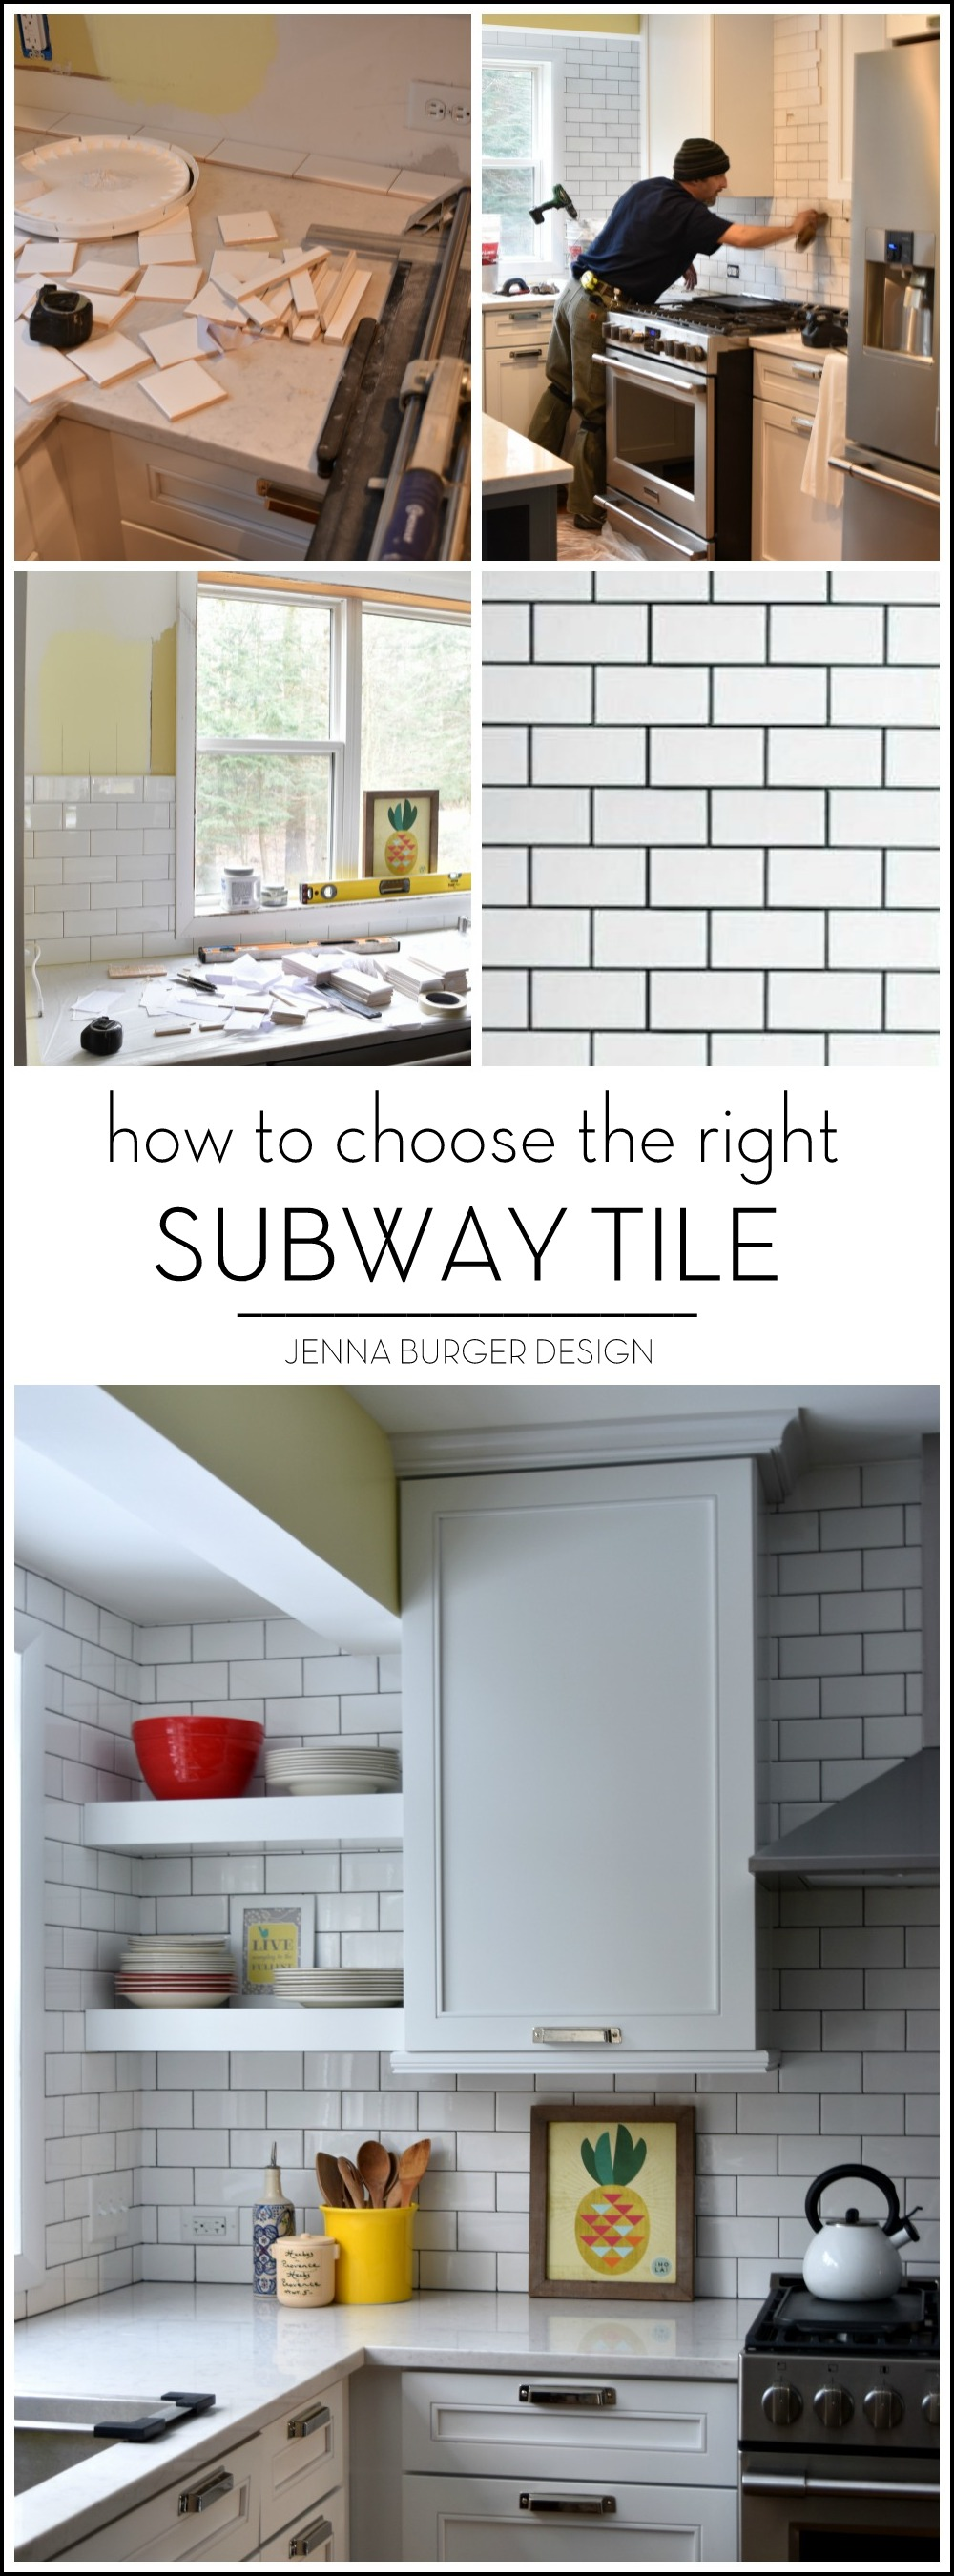 subway tile how do you choose the right subway tile for the project there: subway tiles tile site largest selection